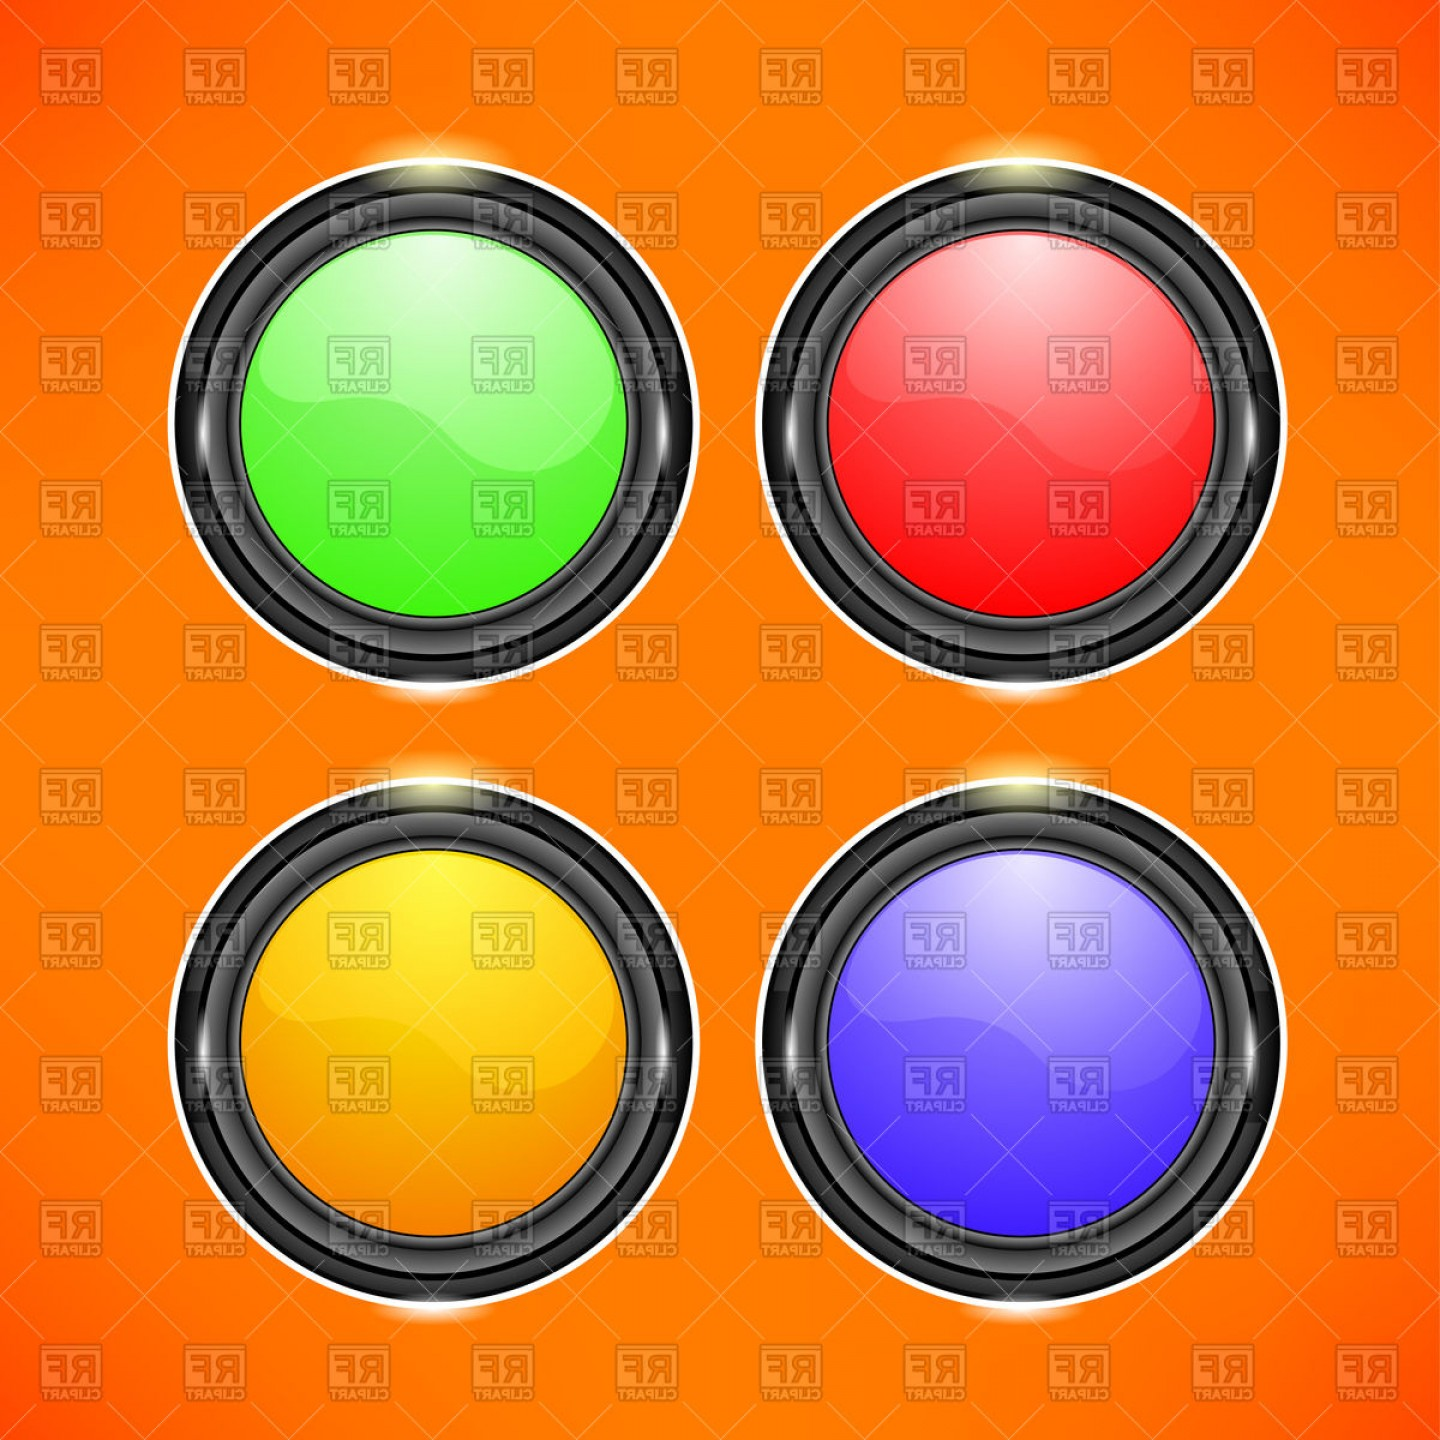 Buttons Vector Art: Colorful Round Buttons Vector Clipart